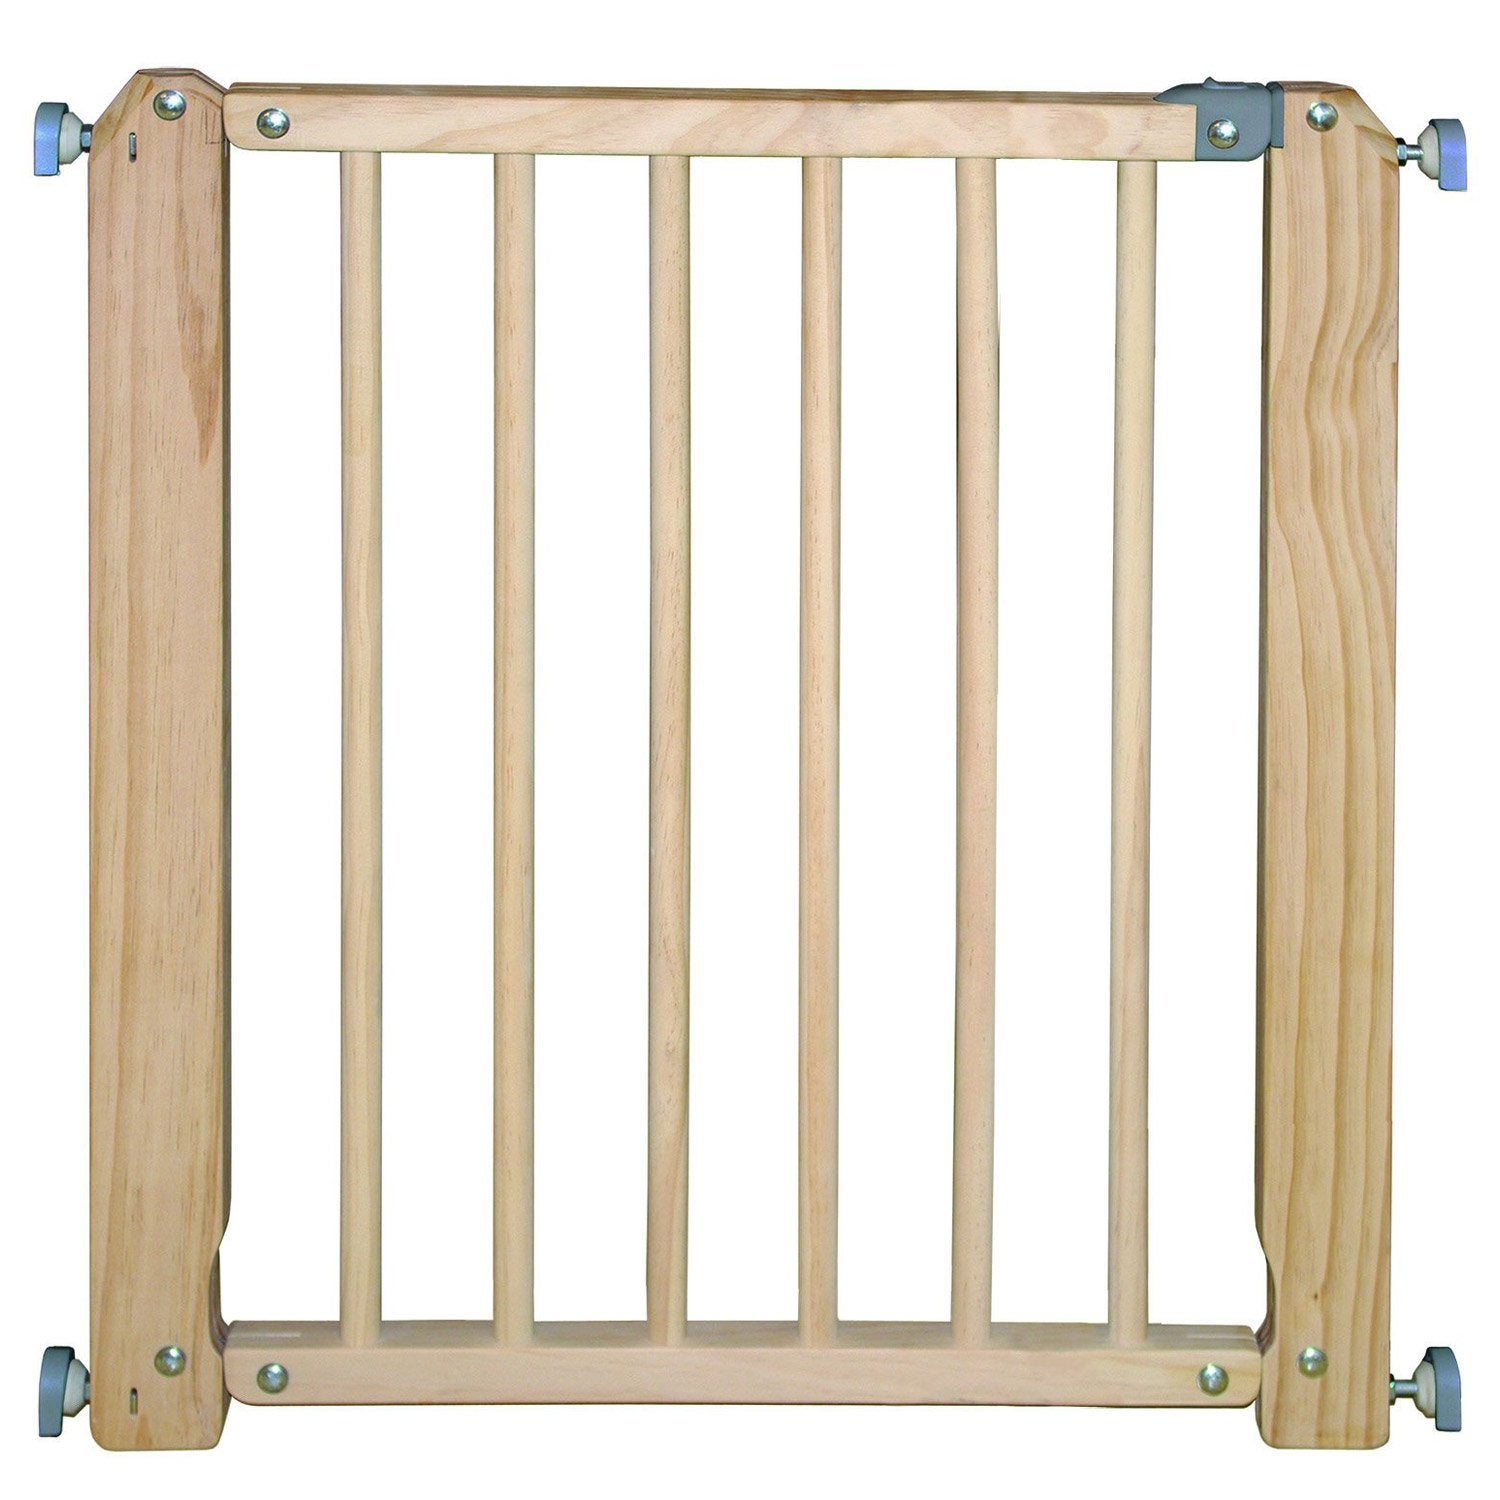 Barri re de s curit enfant en bois naturel long min max for Barriere en bois exterieur